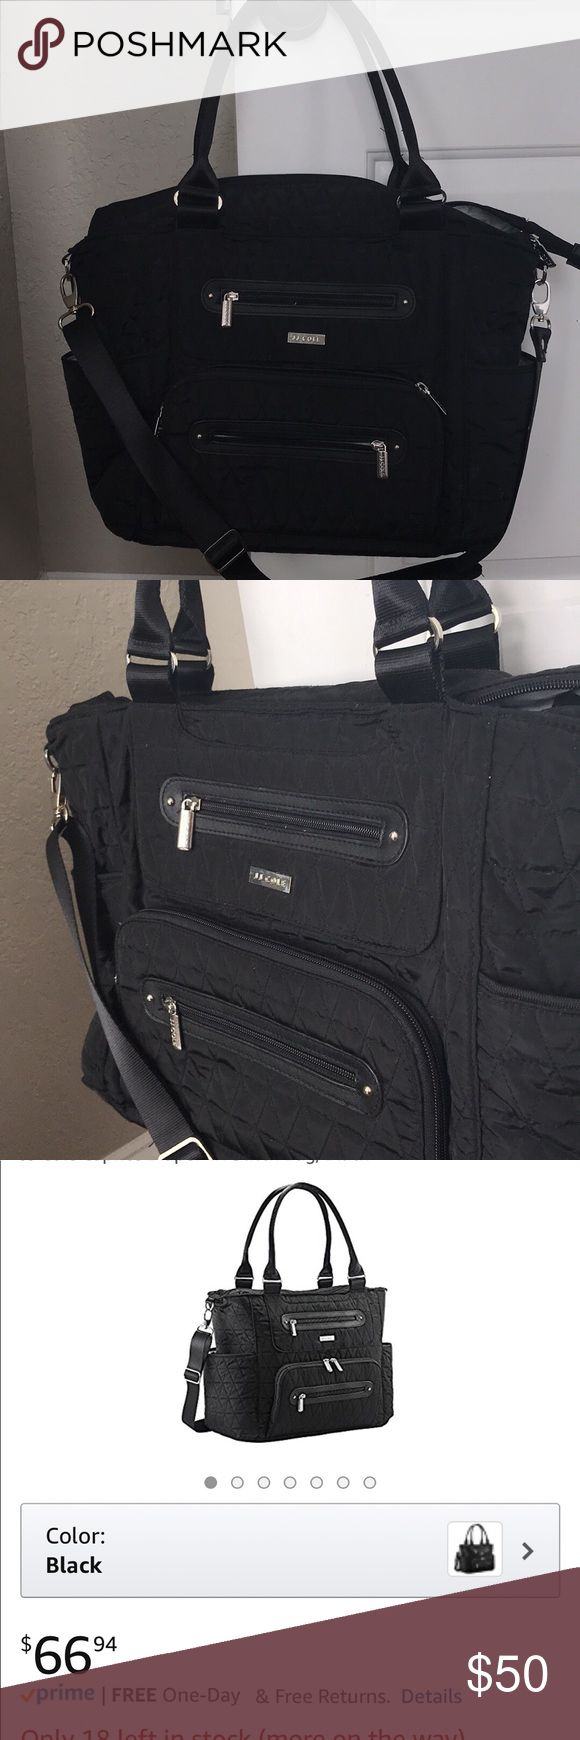 JJ Cole Diaper bag Brand new, never used. Also includes changing pad and stroller hooks Bags Baby Bags